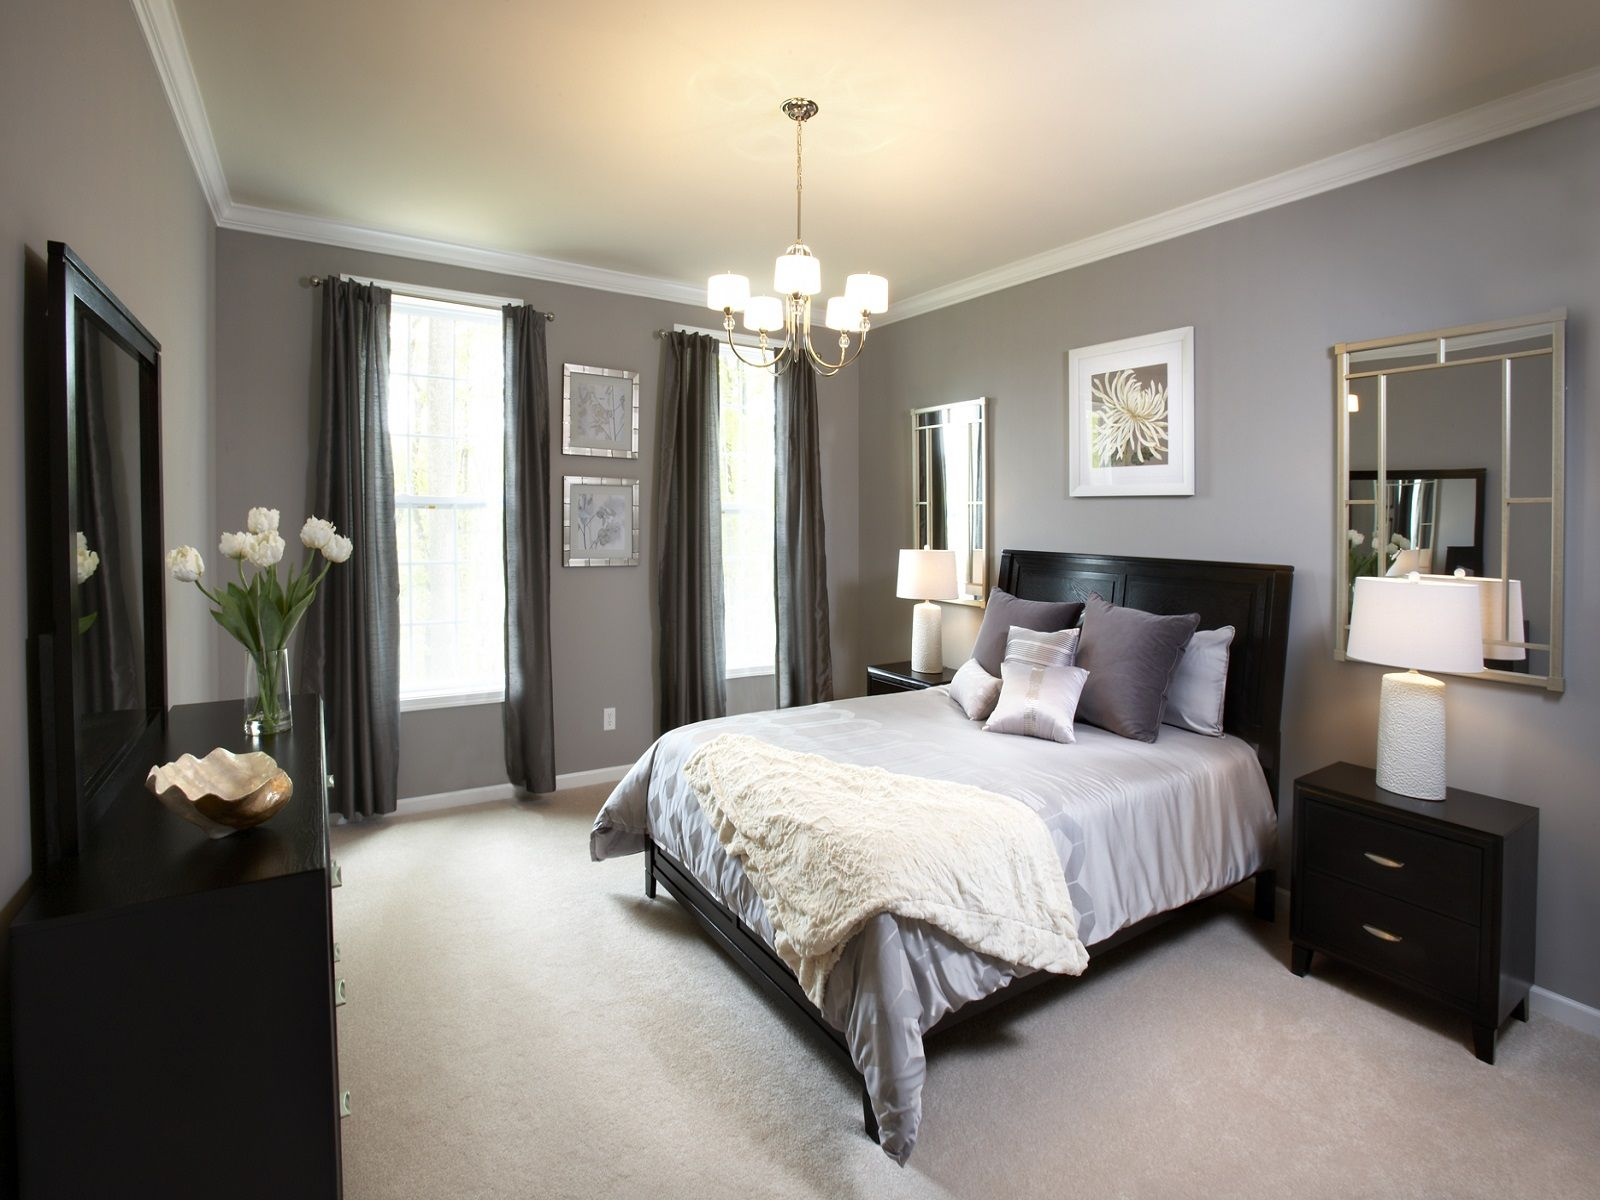 Bedroom paint ideas accent wall paper - Black Bedroom Ideas Inspiration For Master Bedroom Designs